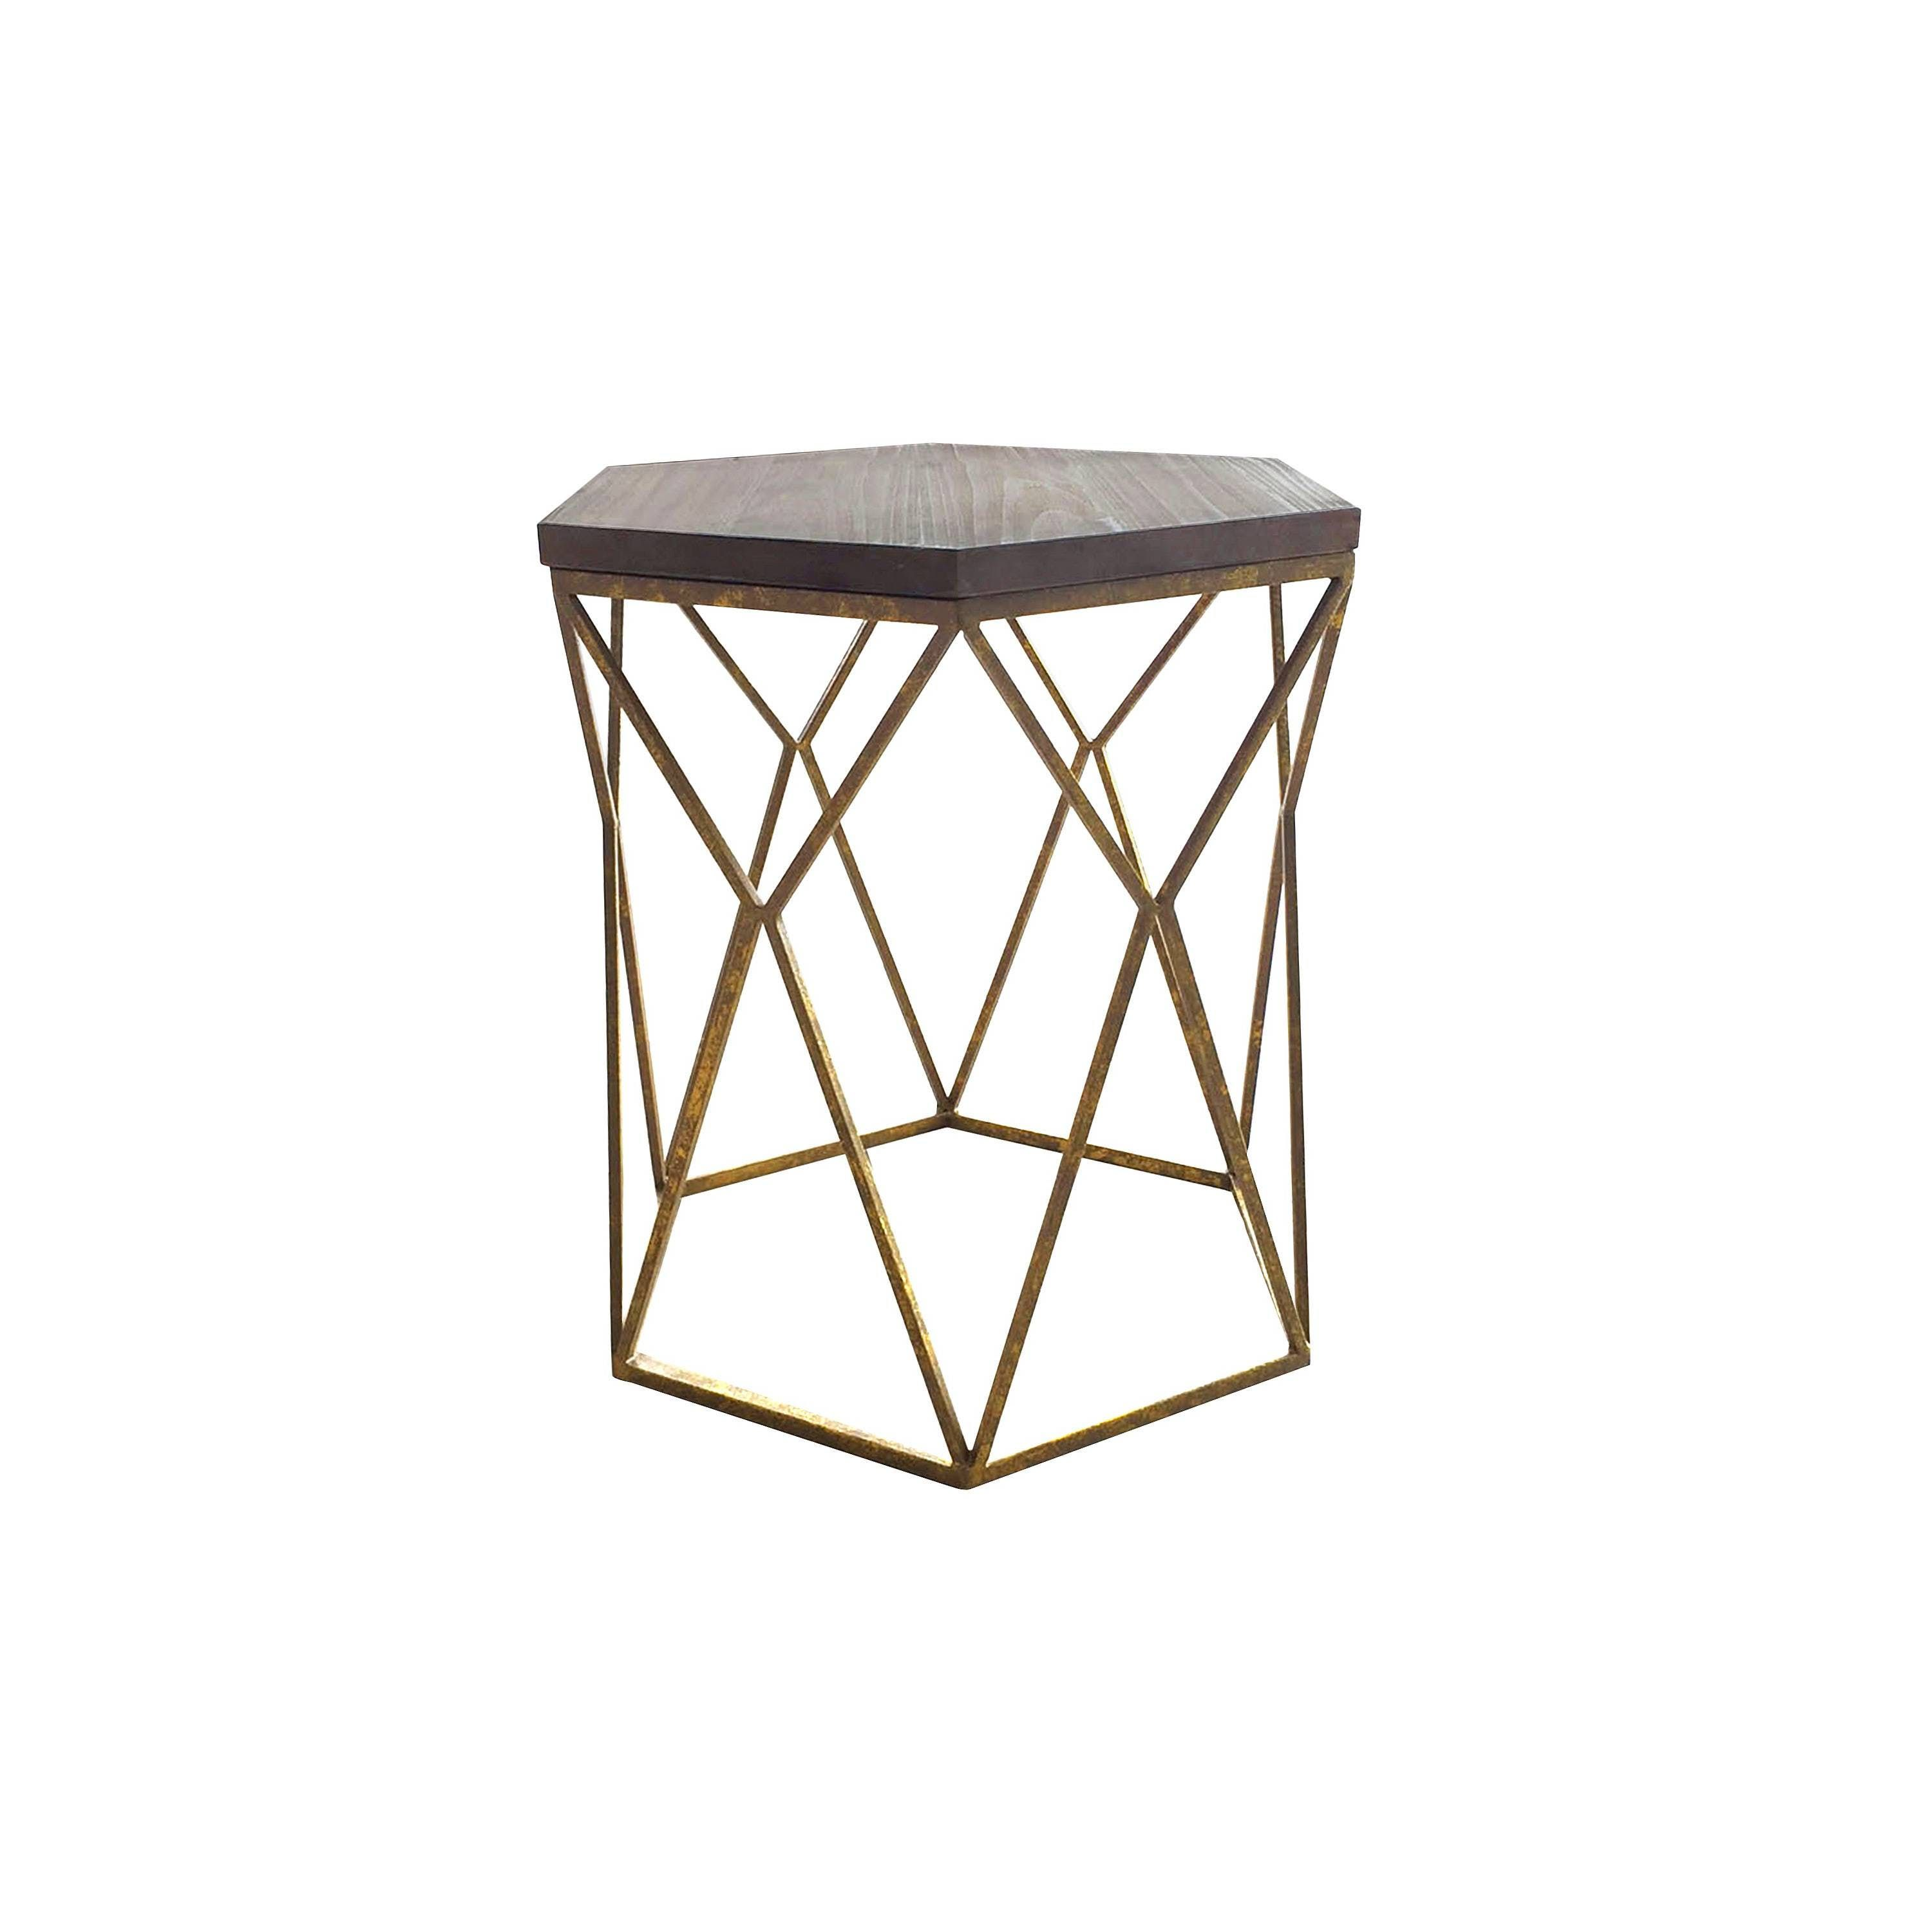 target presidents day our for the best fill hexagon accent table chester end additional off with code president side marble ikea round kitchen corner coffee small white replica